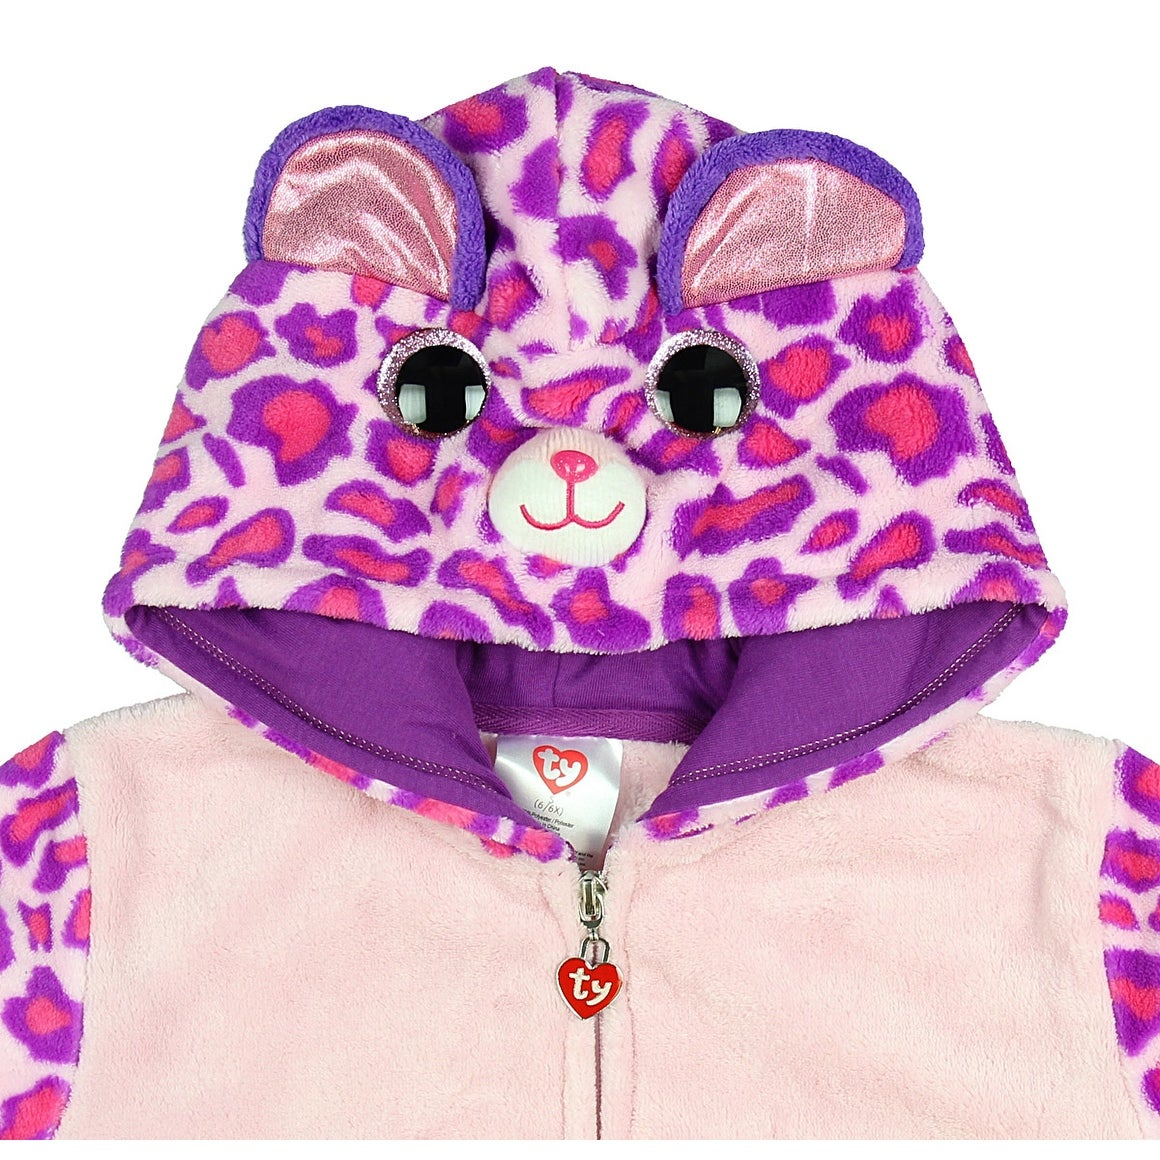 bb2d5f263f5 Shop TY Beanie Boo Girls  Glamour The Leopard Plush Costume Hoodie - Free  Shipping On Orders Over  45 - Overstock - 19473486